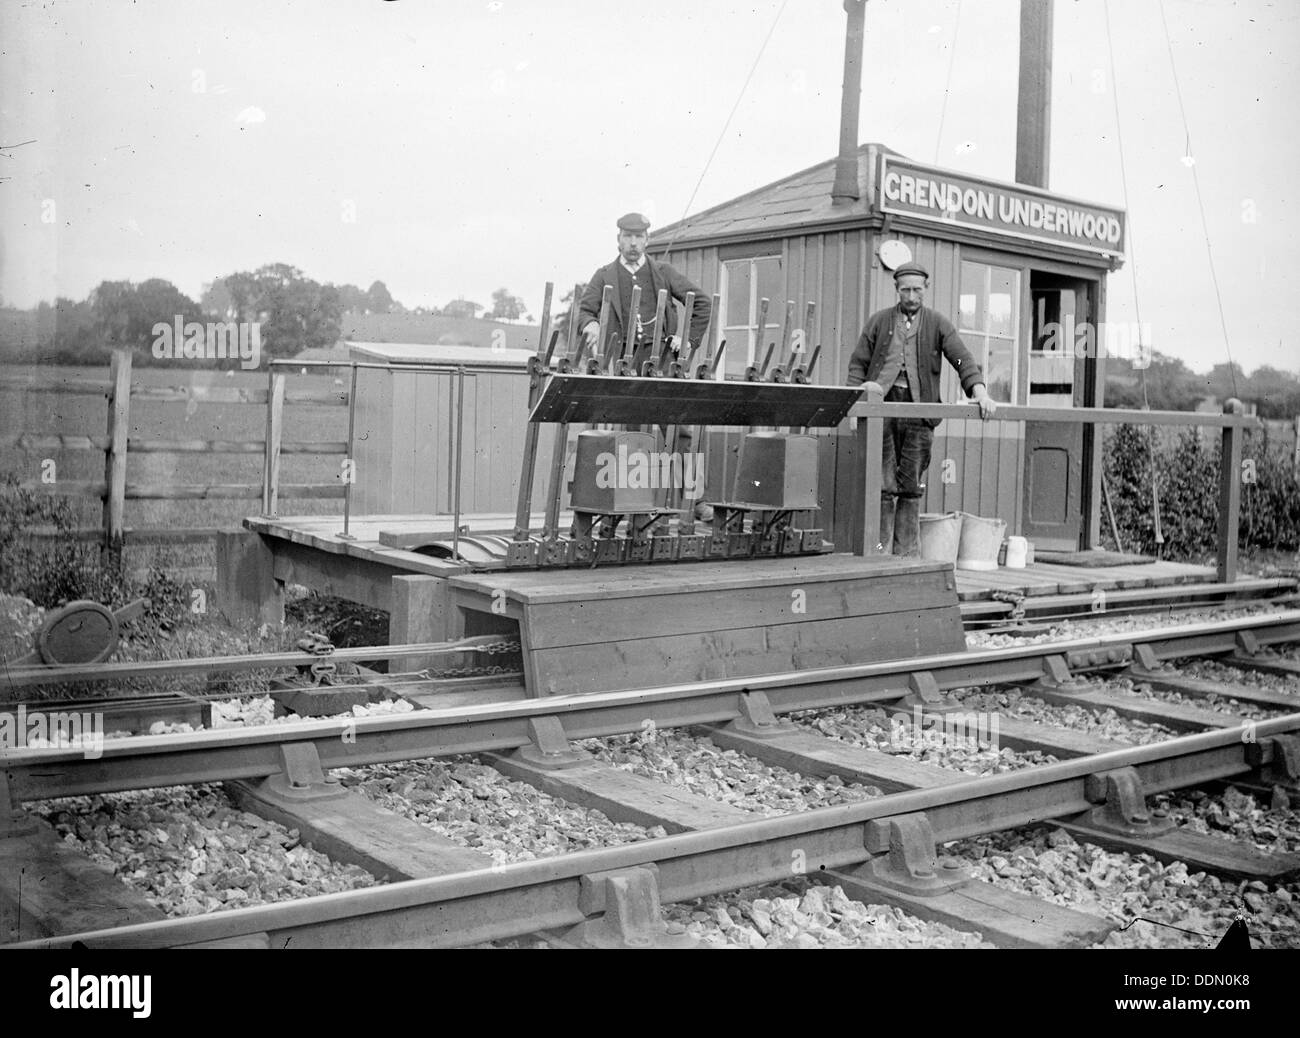 Signalmen pose outside a signal box near Grendon Underwood, Northamptonshire, c1872-c1923. Artist: Alfred Newton & Sons - Stock Image